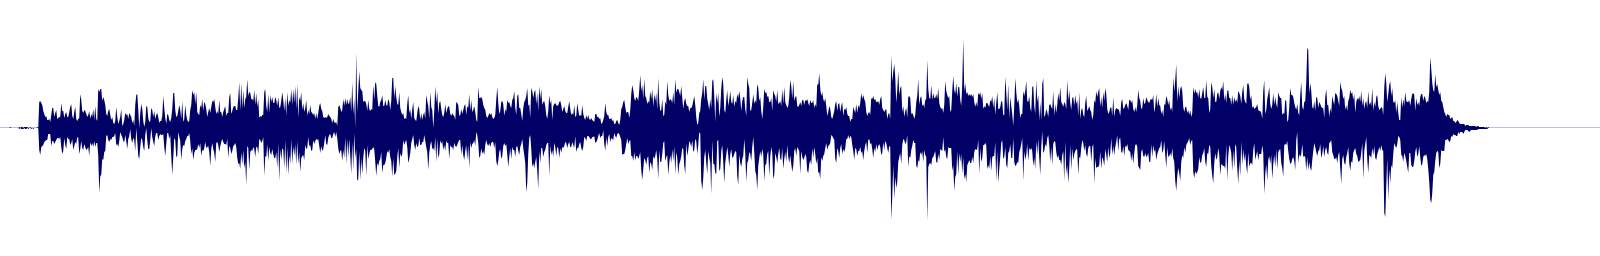 waveform of track #95527